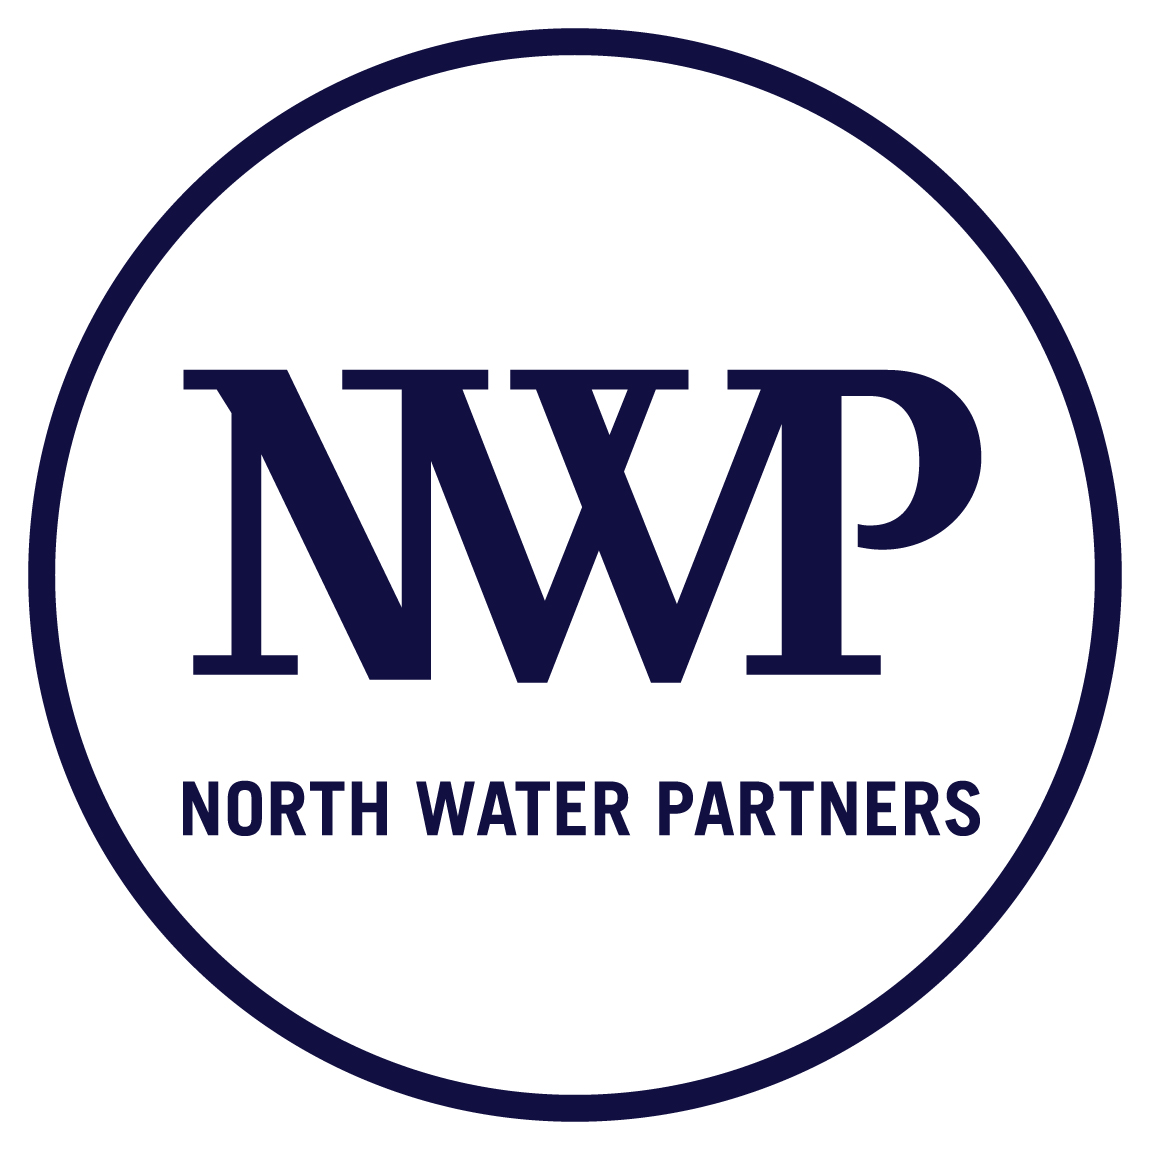 North Water Partners logo 07.07.15